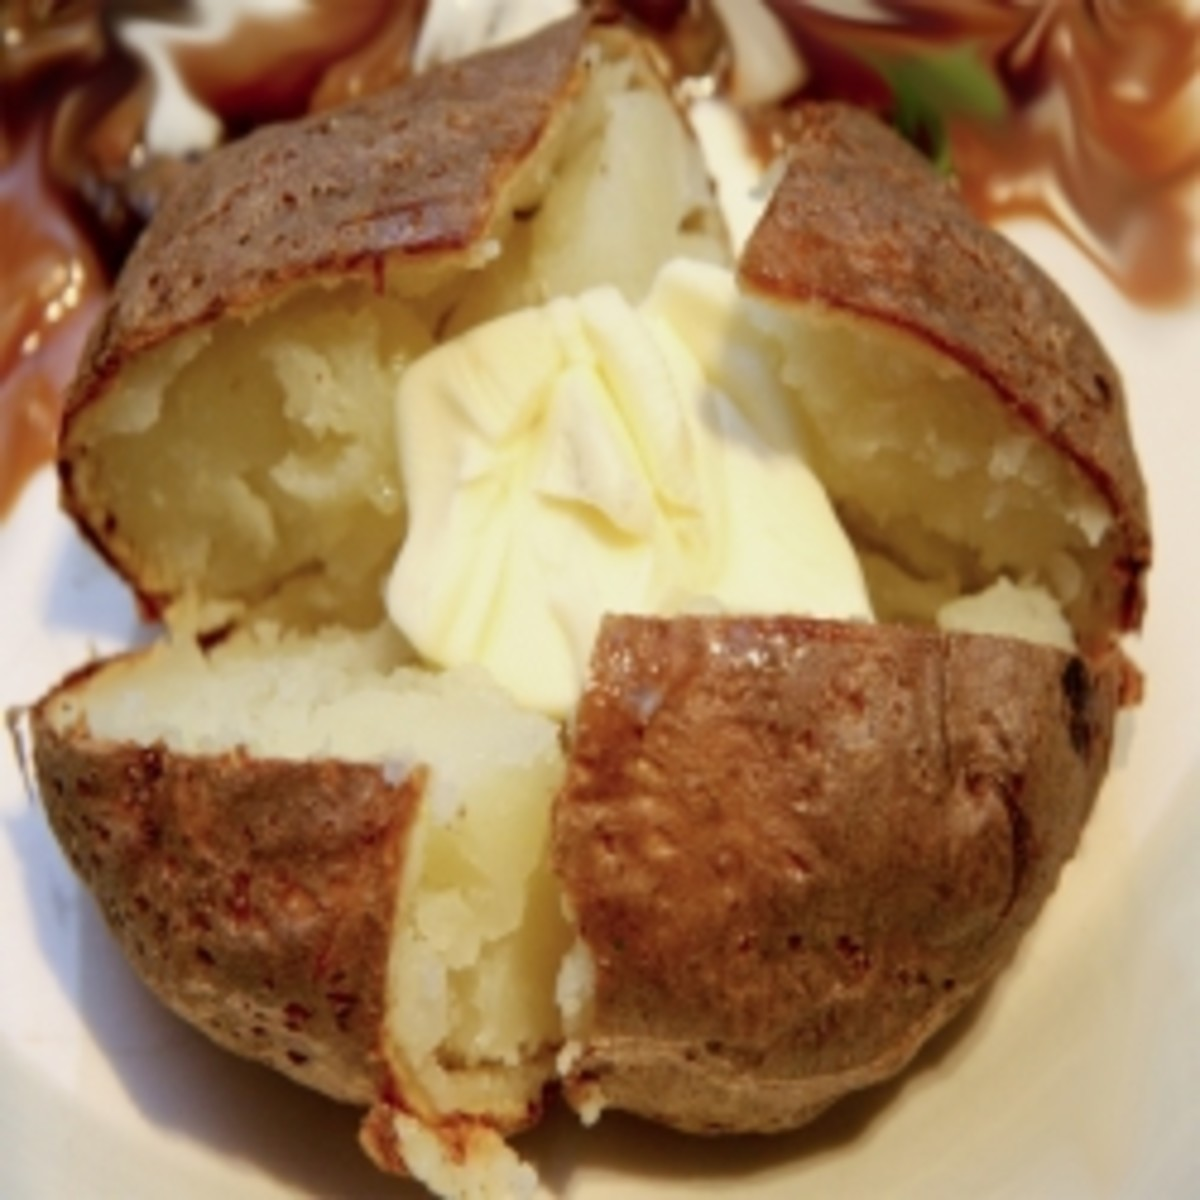 How To Make The Best Baked Potato With Yummy Toppings And Fillings!